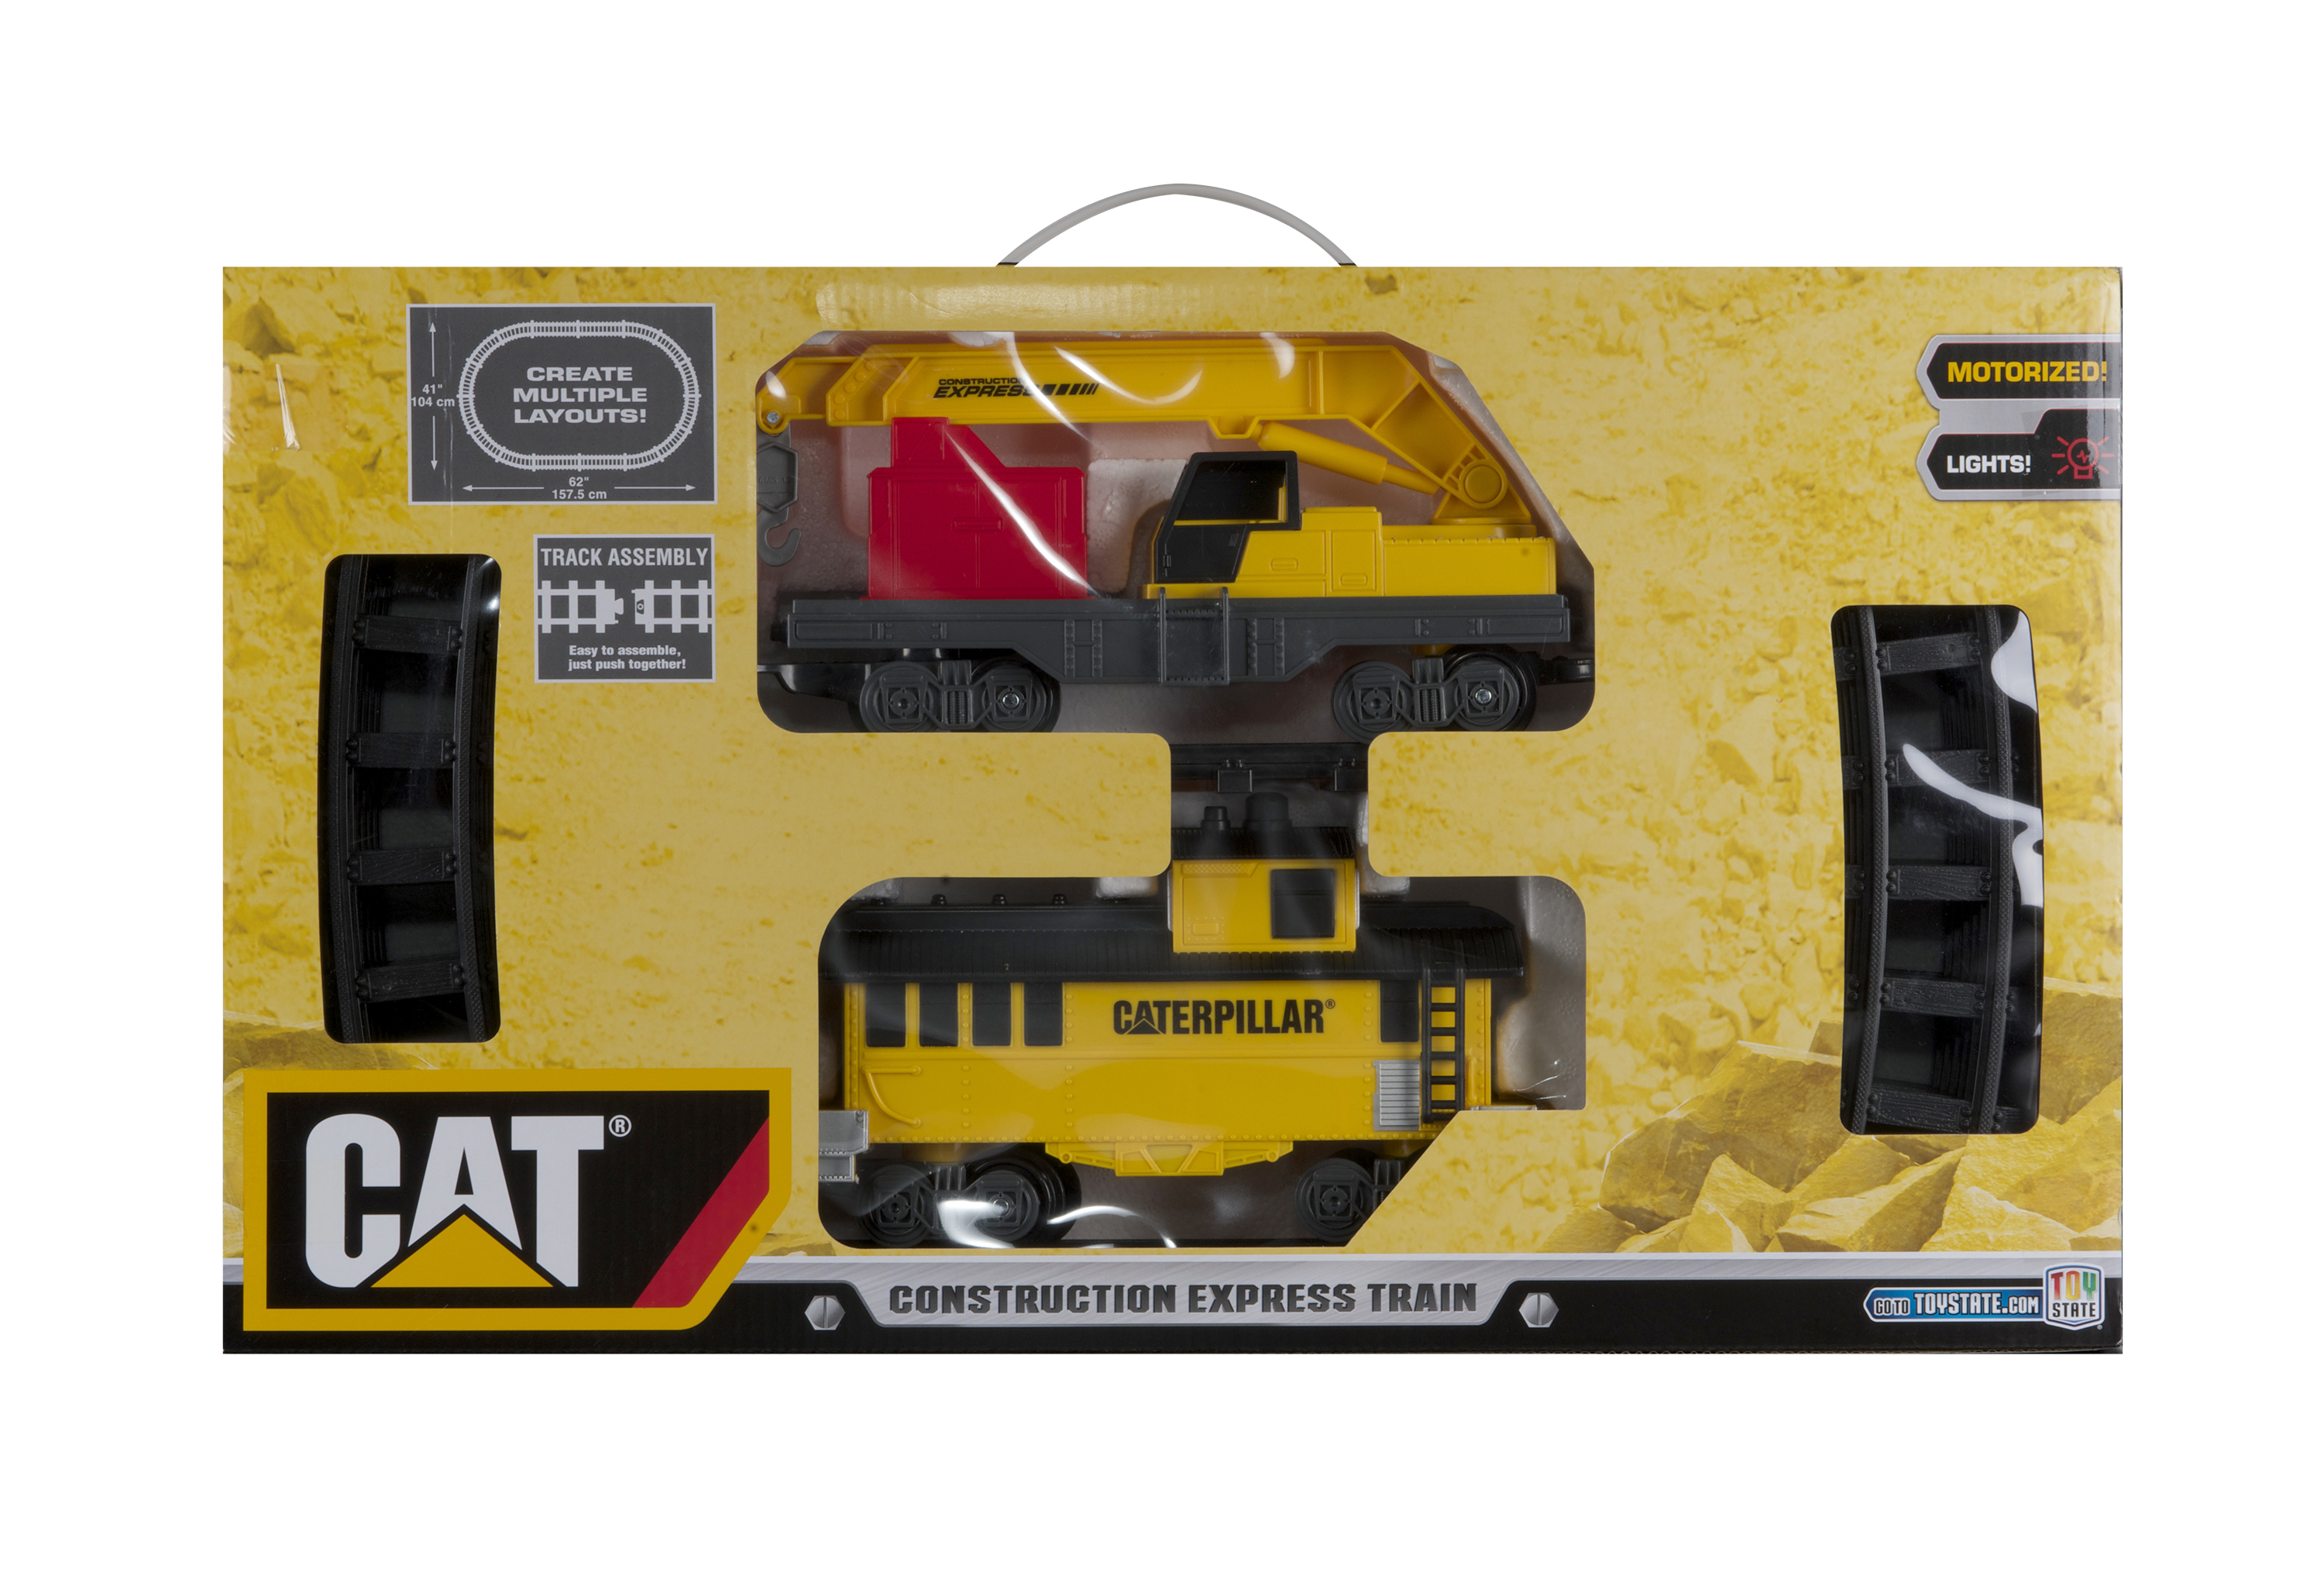 Caterpillar Construction Express Train (Double Deep Packaging) by Toy State International Limited